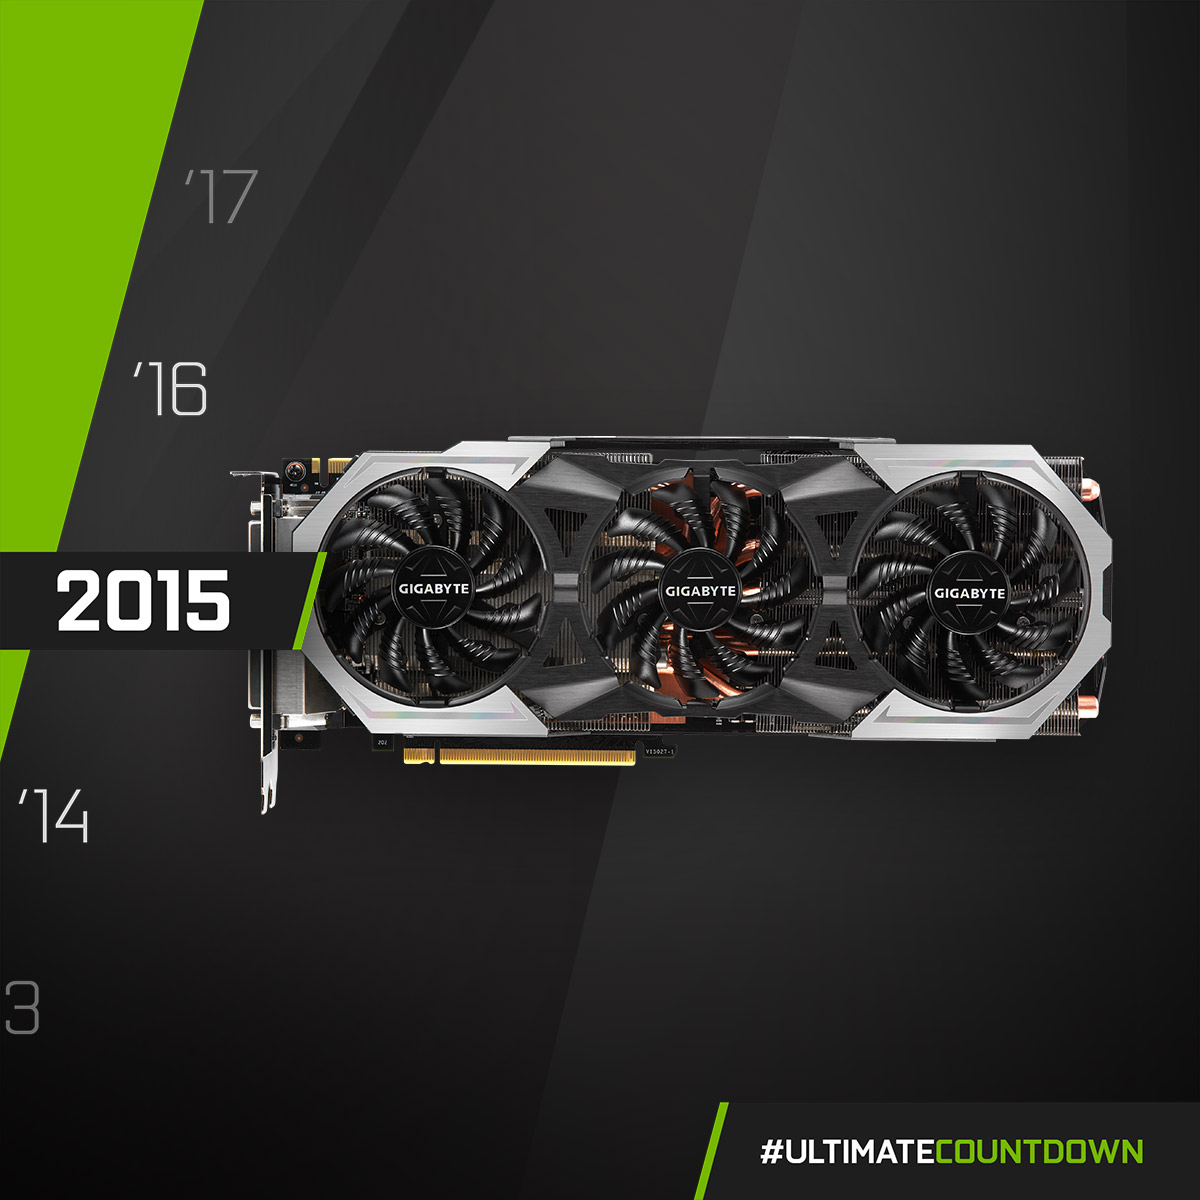 NVIDIA GeForce GTX 980 Ti - 2015  Thermal dissipation power upgraded! 💪 The silvery metal GIGABYTE GTX 980 Ti G1 GAMING equipped with the WINDFORCE 3X cooler - capable of dissipating 600W of heat output from the card!  #UltimateCountdown #UltimateAORUS #GIGABYTE https://t.co/earo2eNlTX